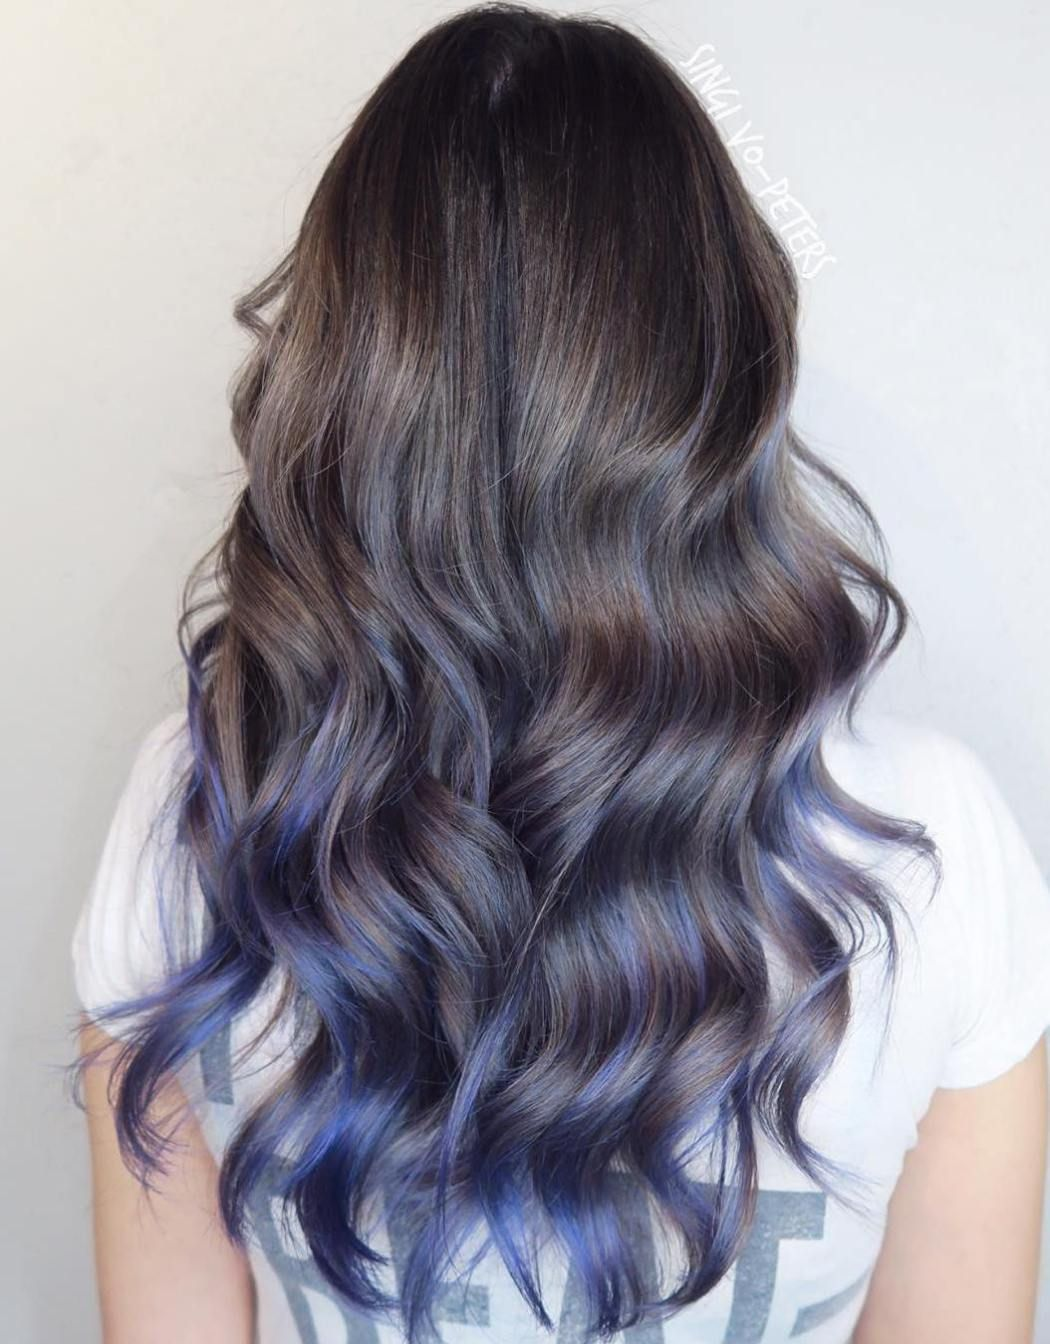 Watch - Blue pastel and purple hair photo video